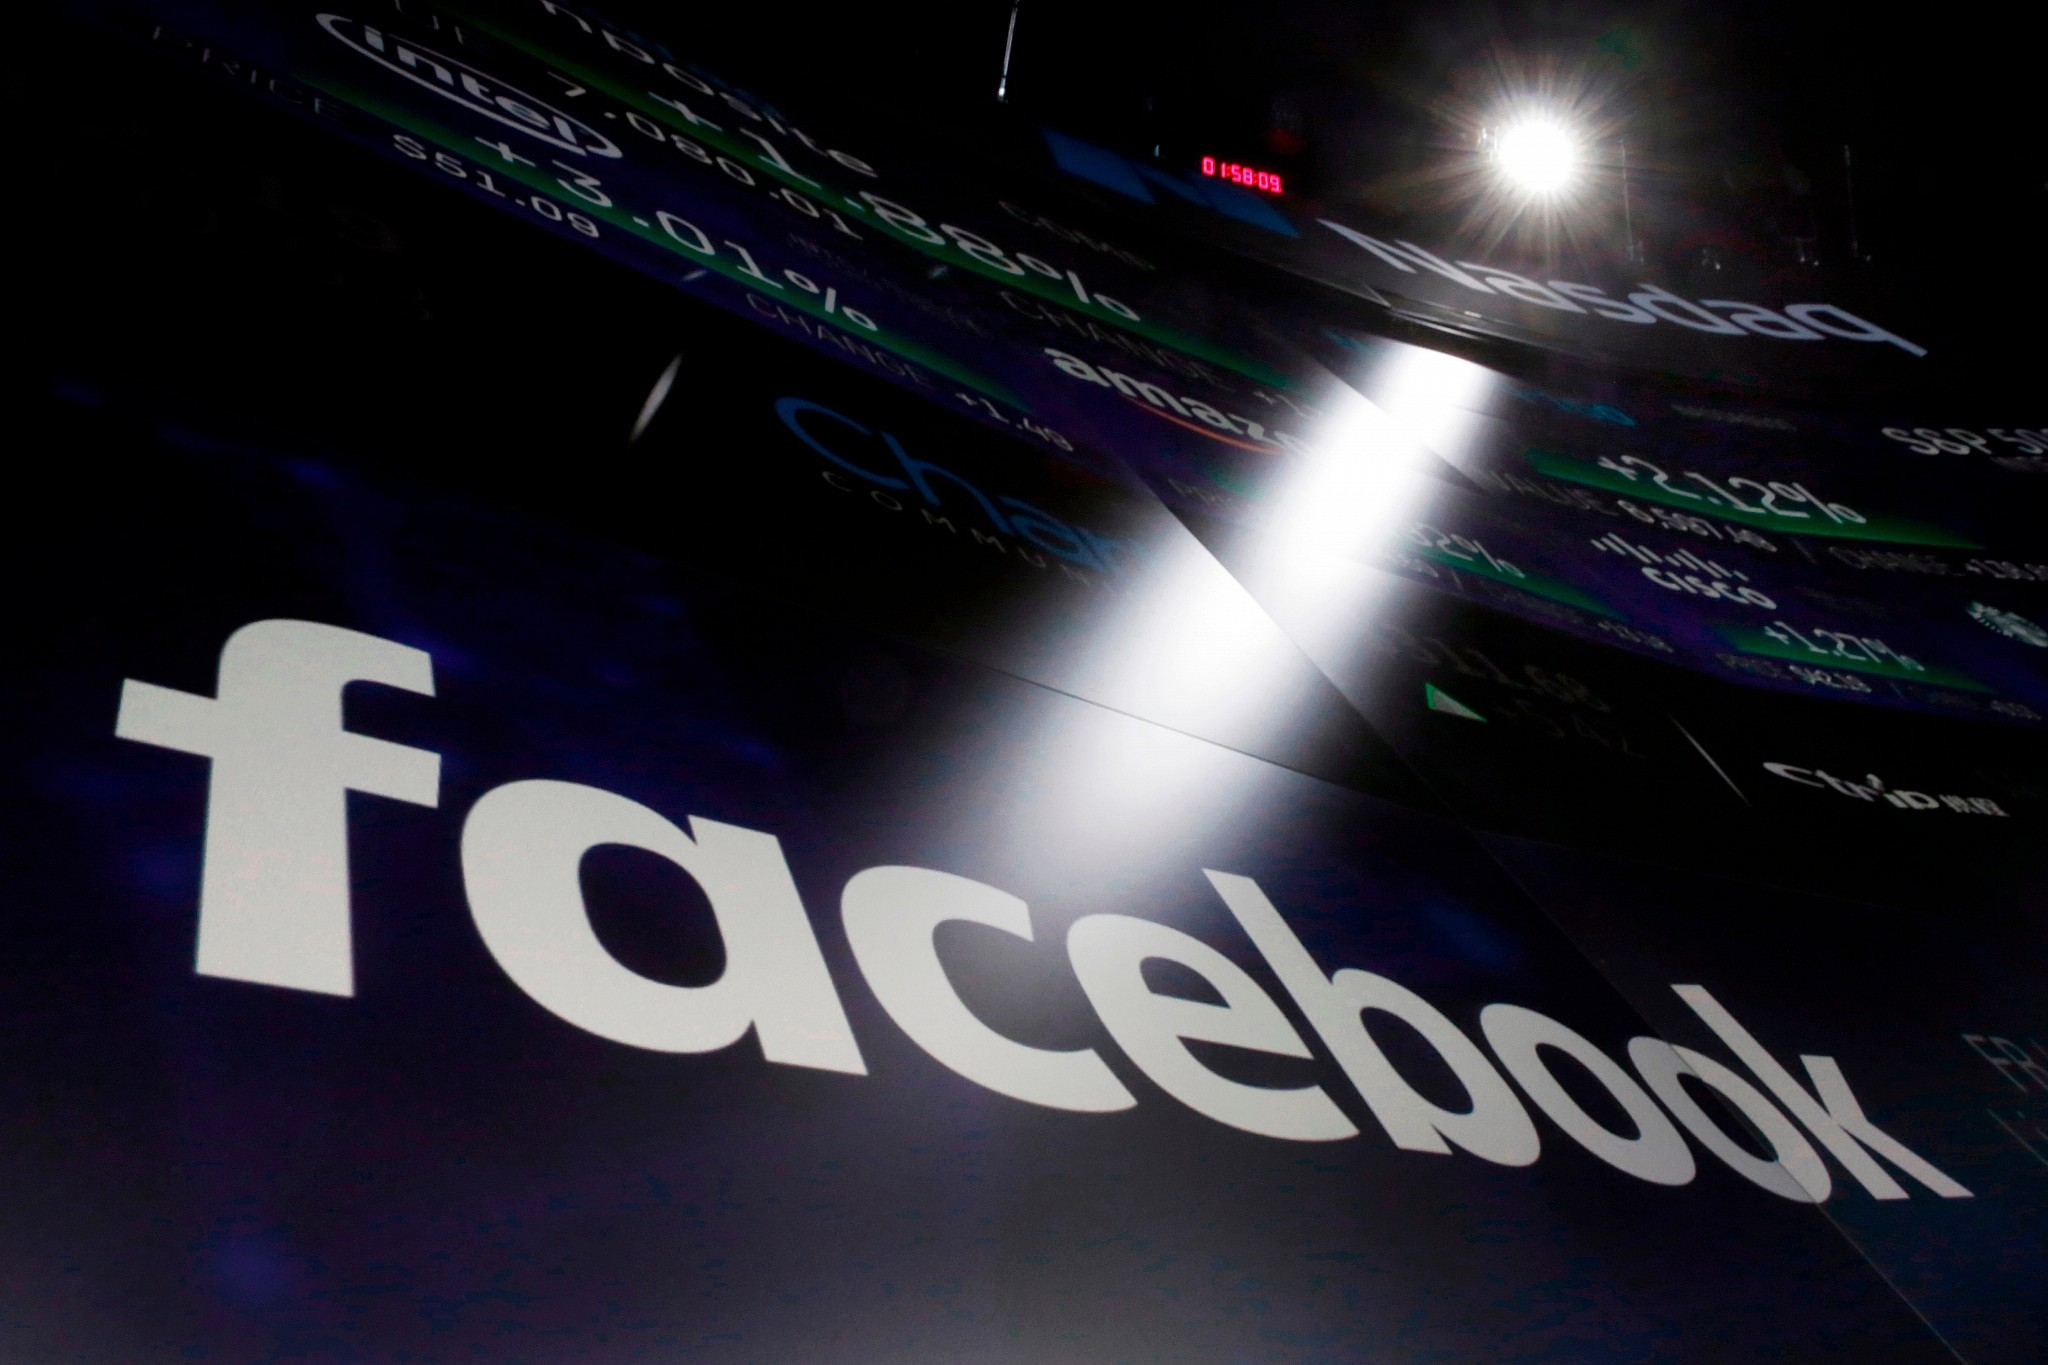 A student found a bug in Facebook privacy and he was fired